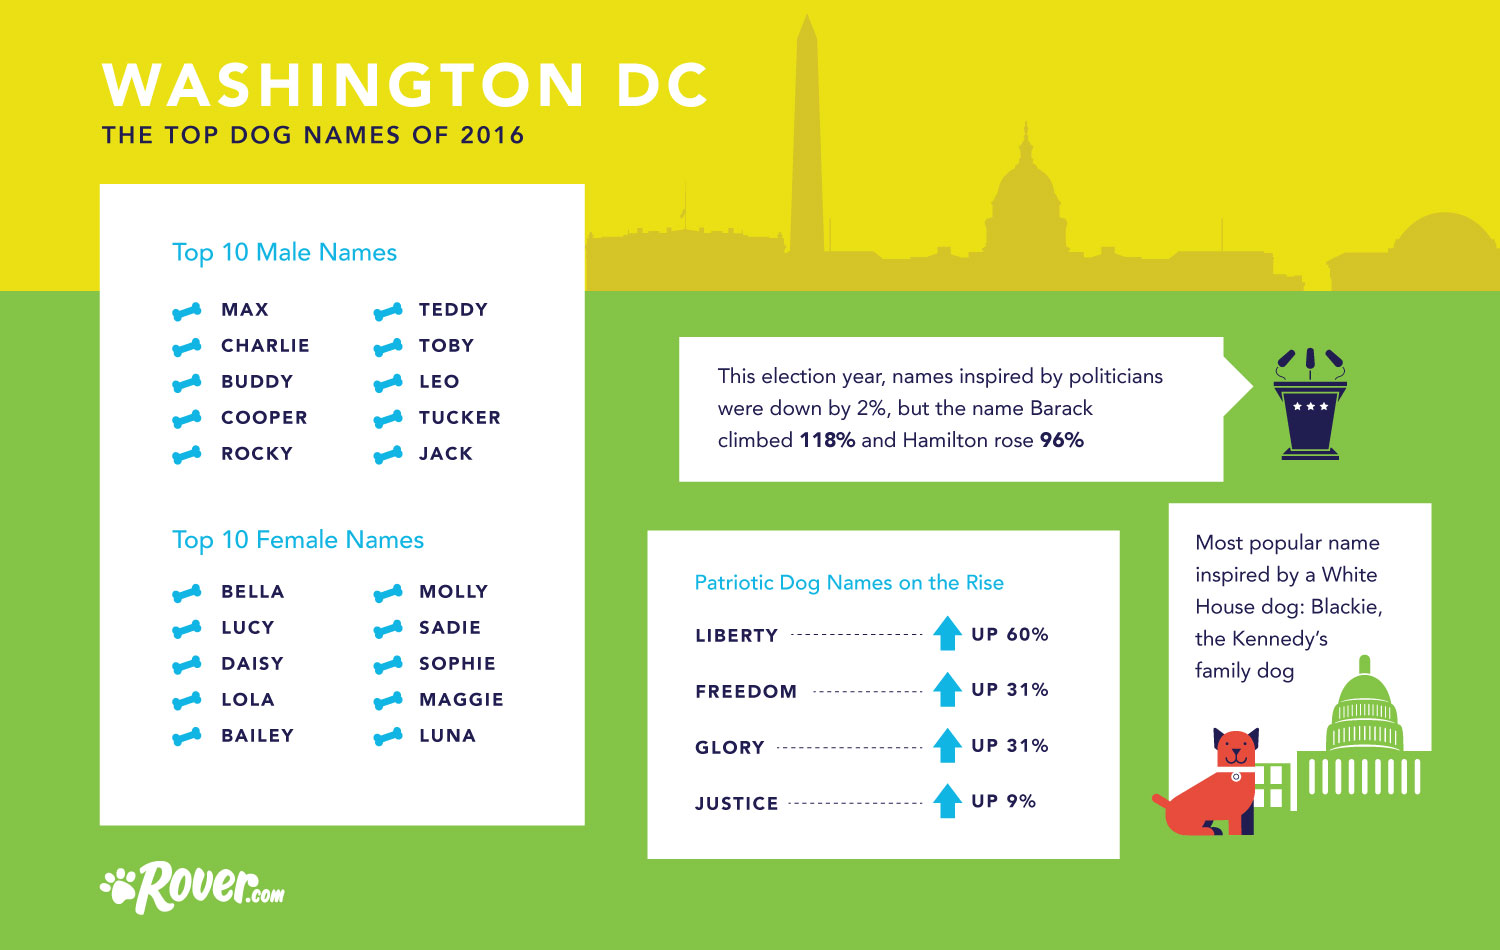 dog names in washington dc